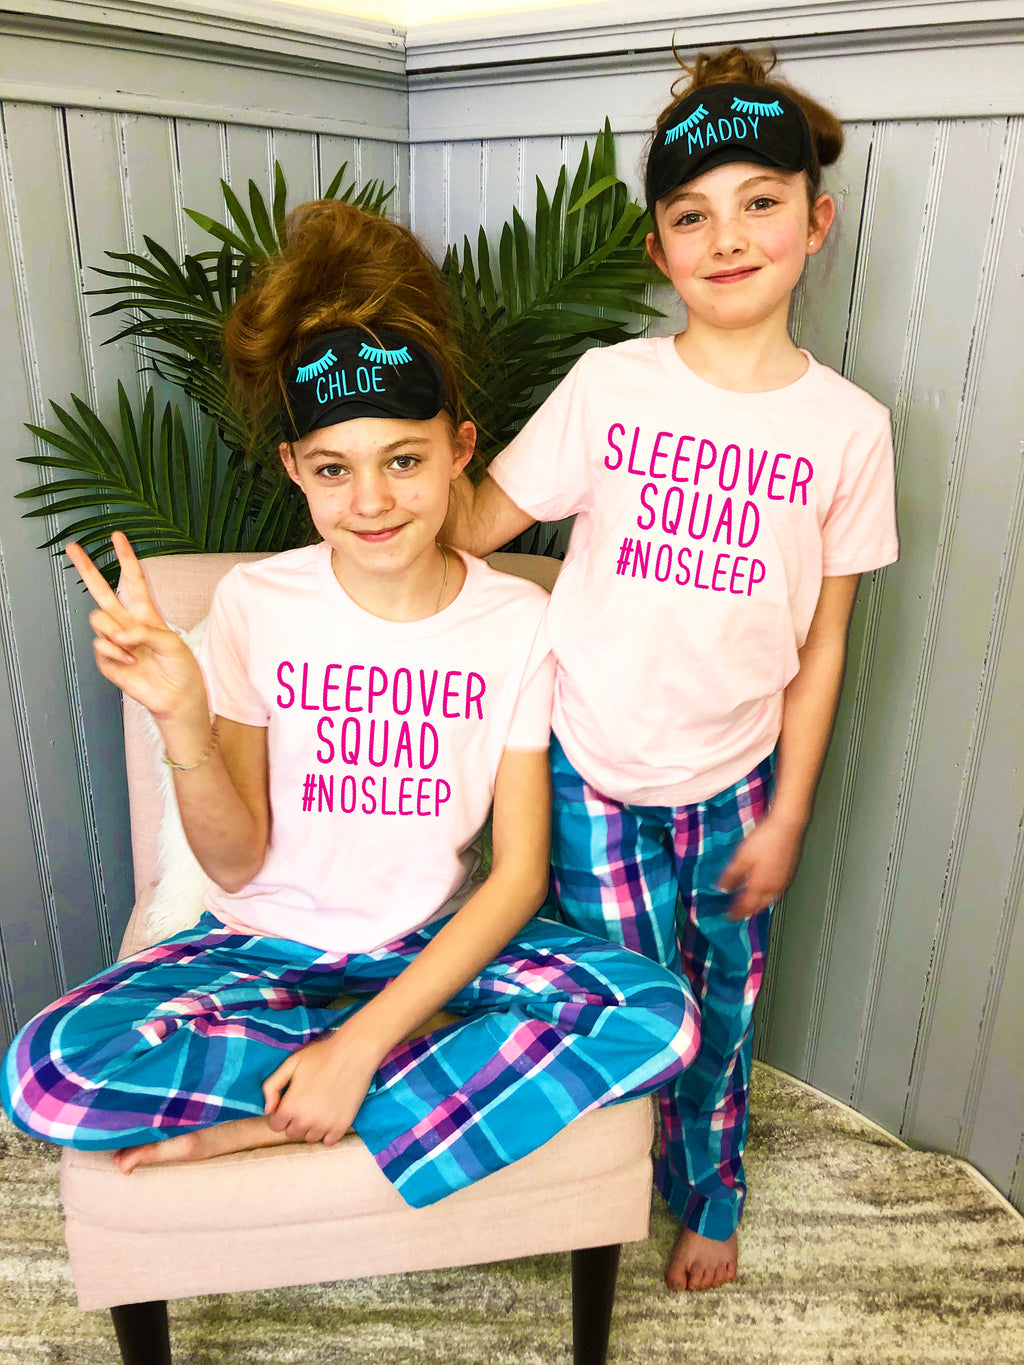 personalized eye masks, sleepover squad, kids pajamas, matching sister pajamas, sleepover squad shirts, pajamas for slumber party